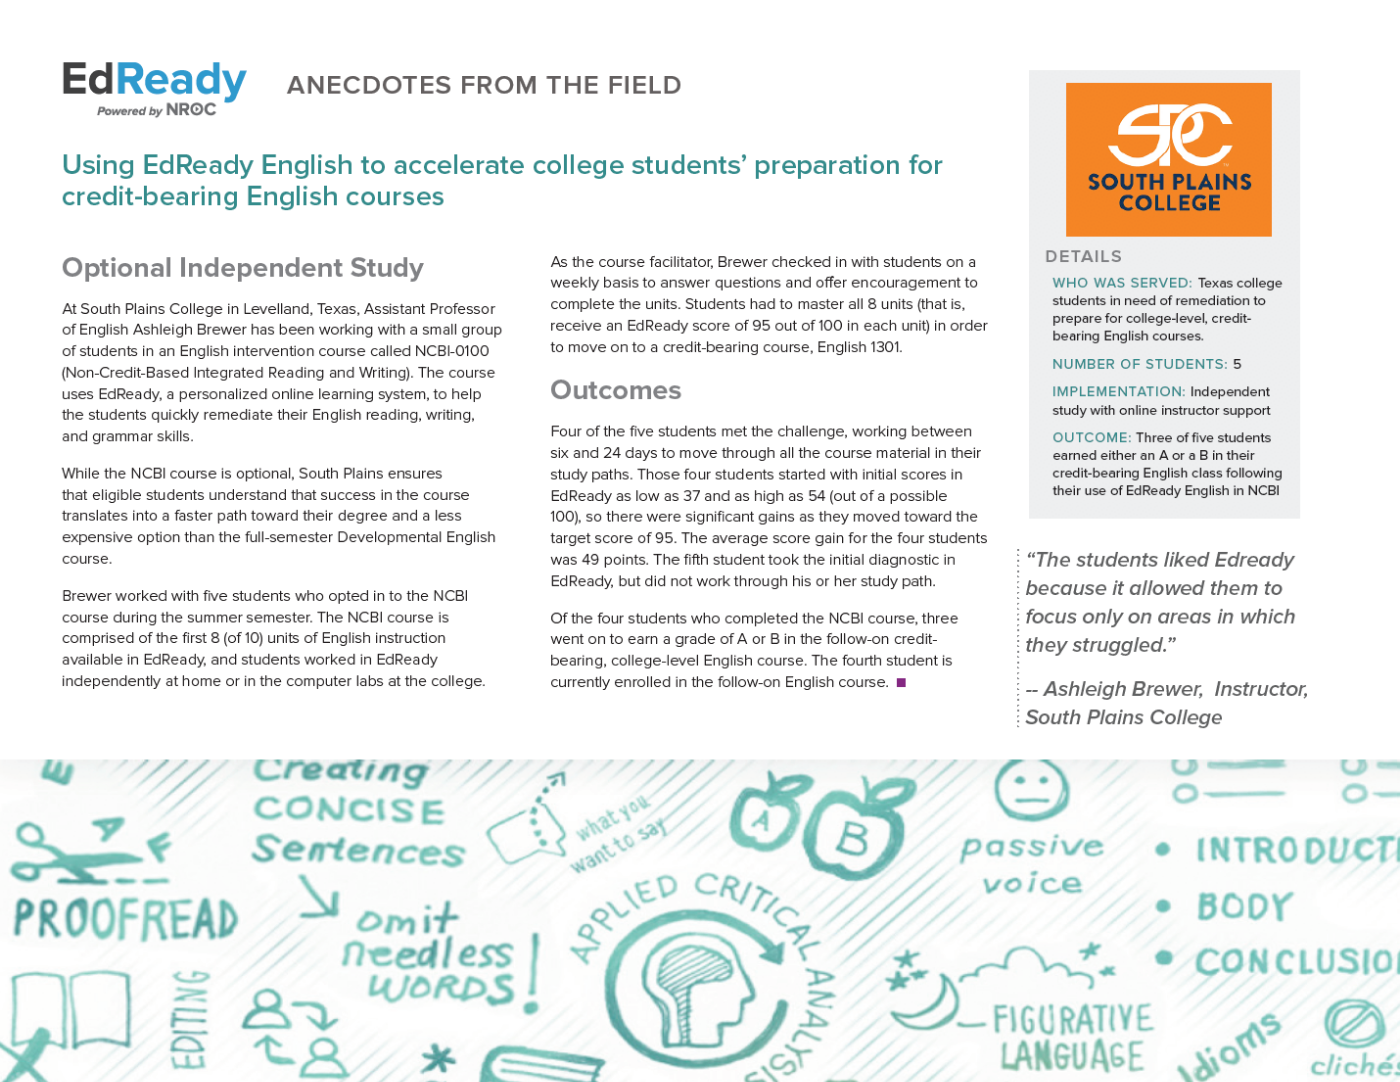 Using EdReady English to Accelerate College Students' Preparation for Credit-Bearing English Courses